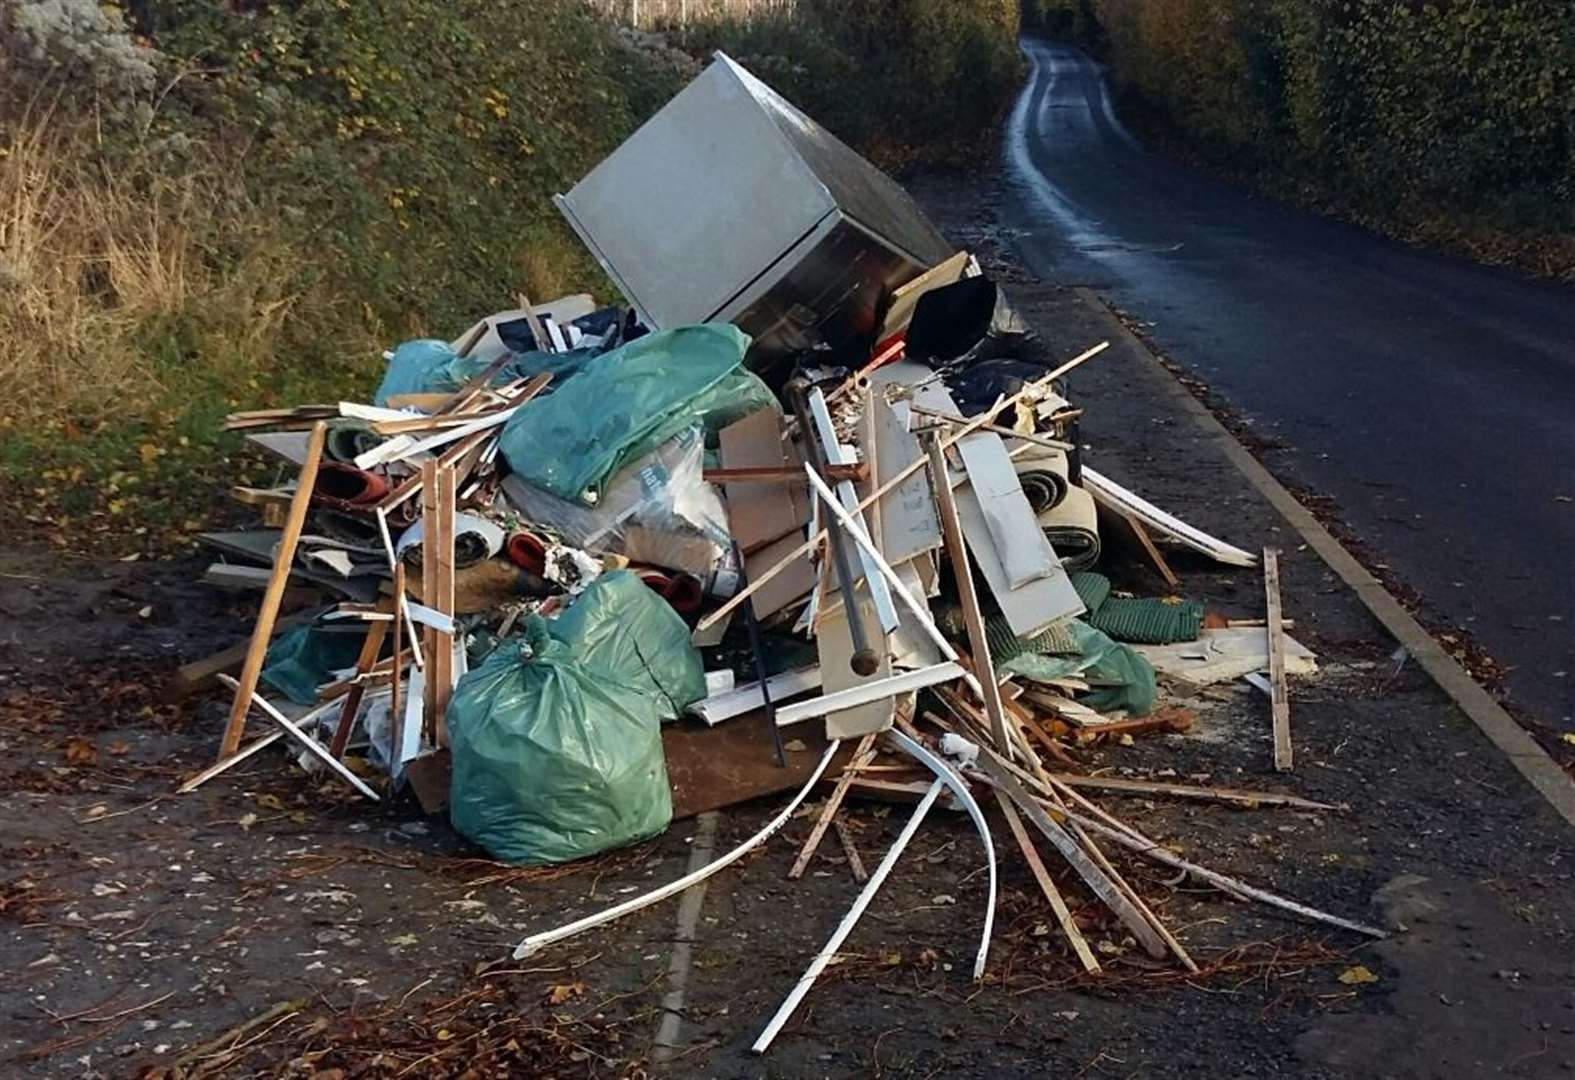 Man sentenced for fly-tipping